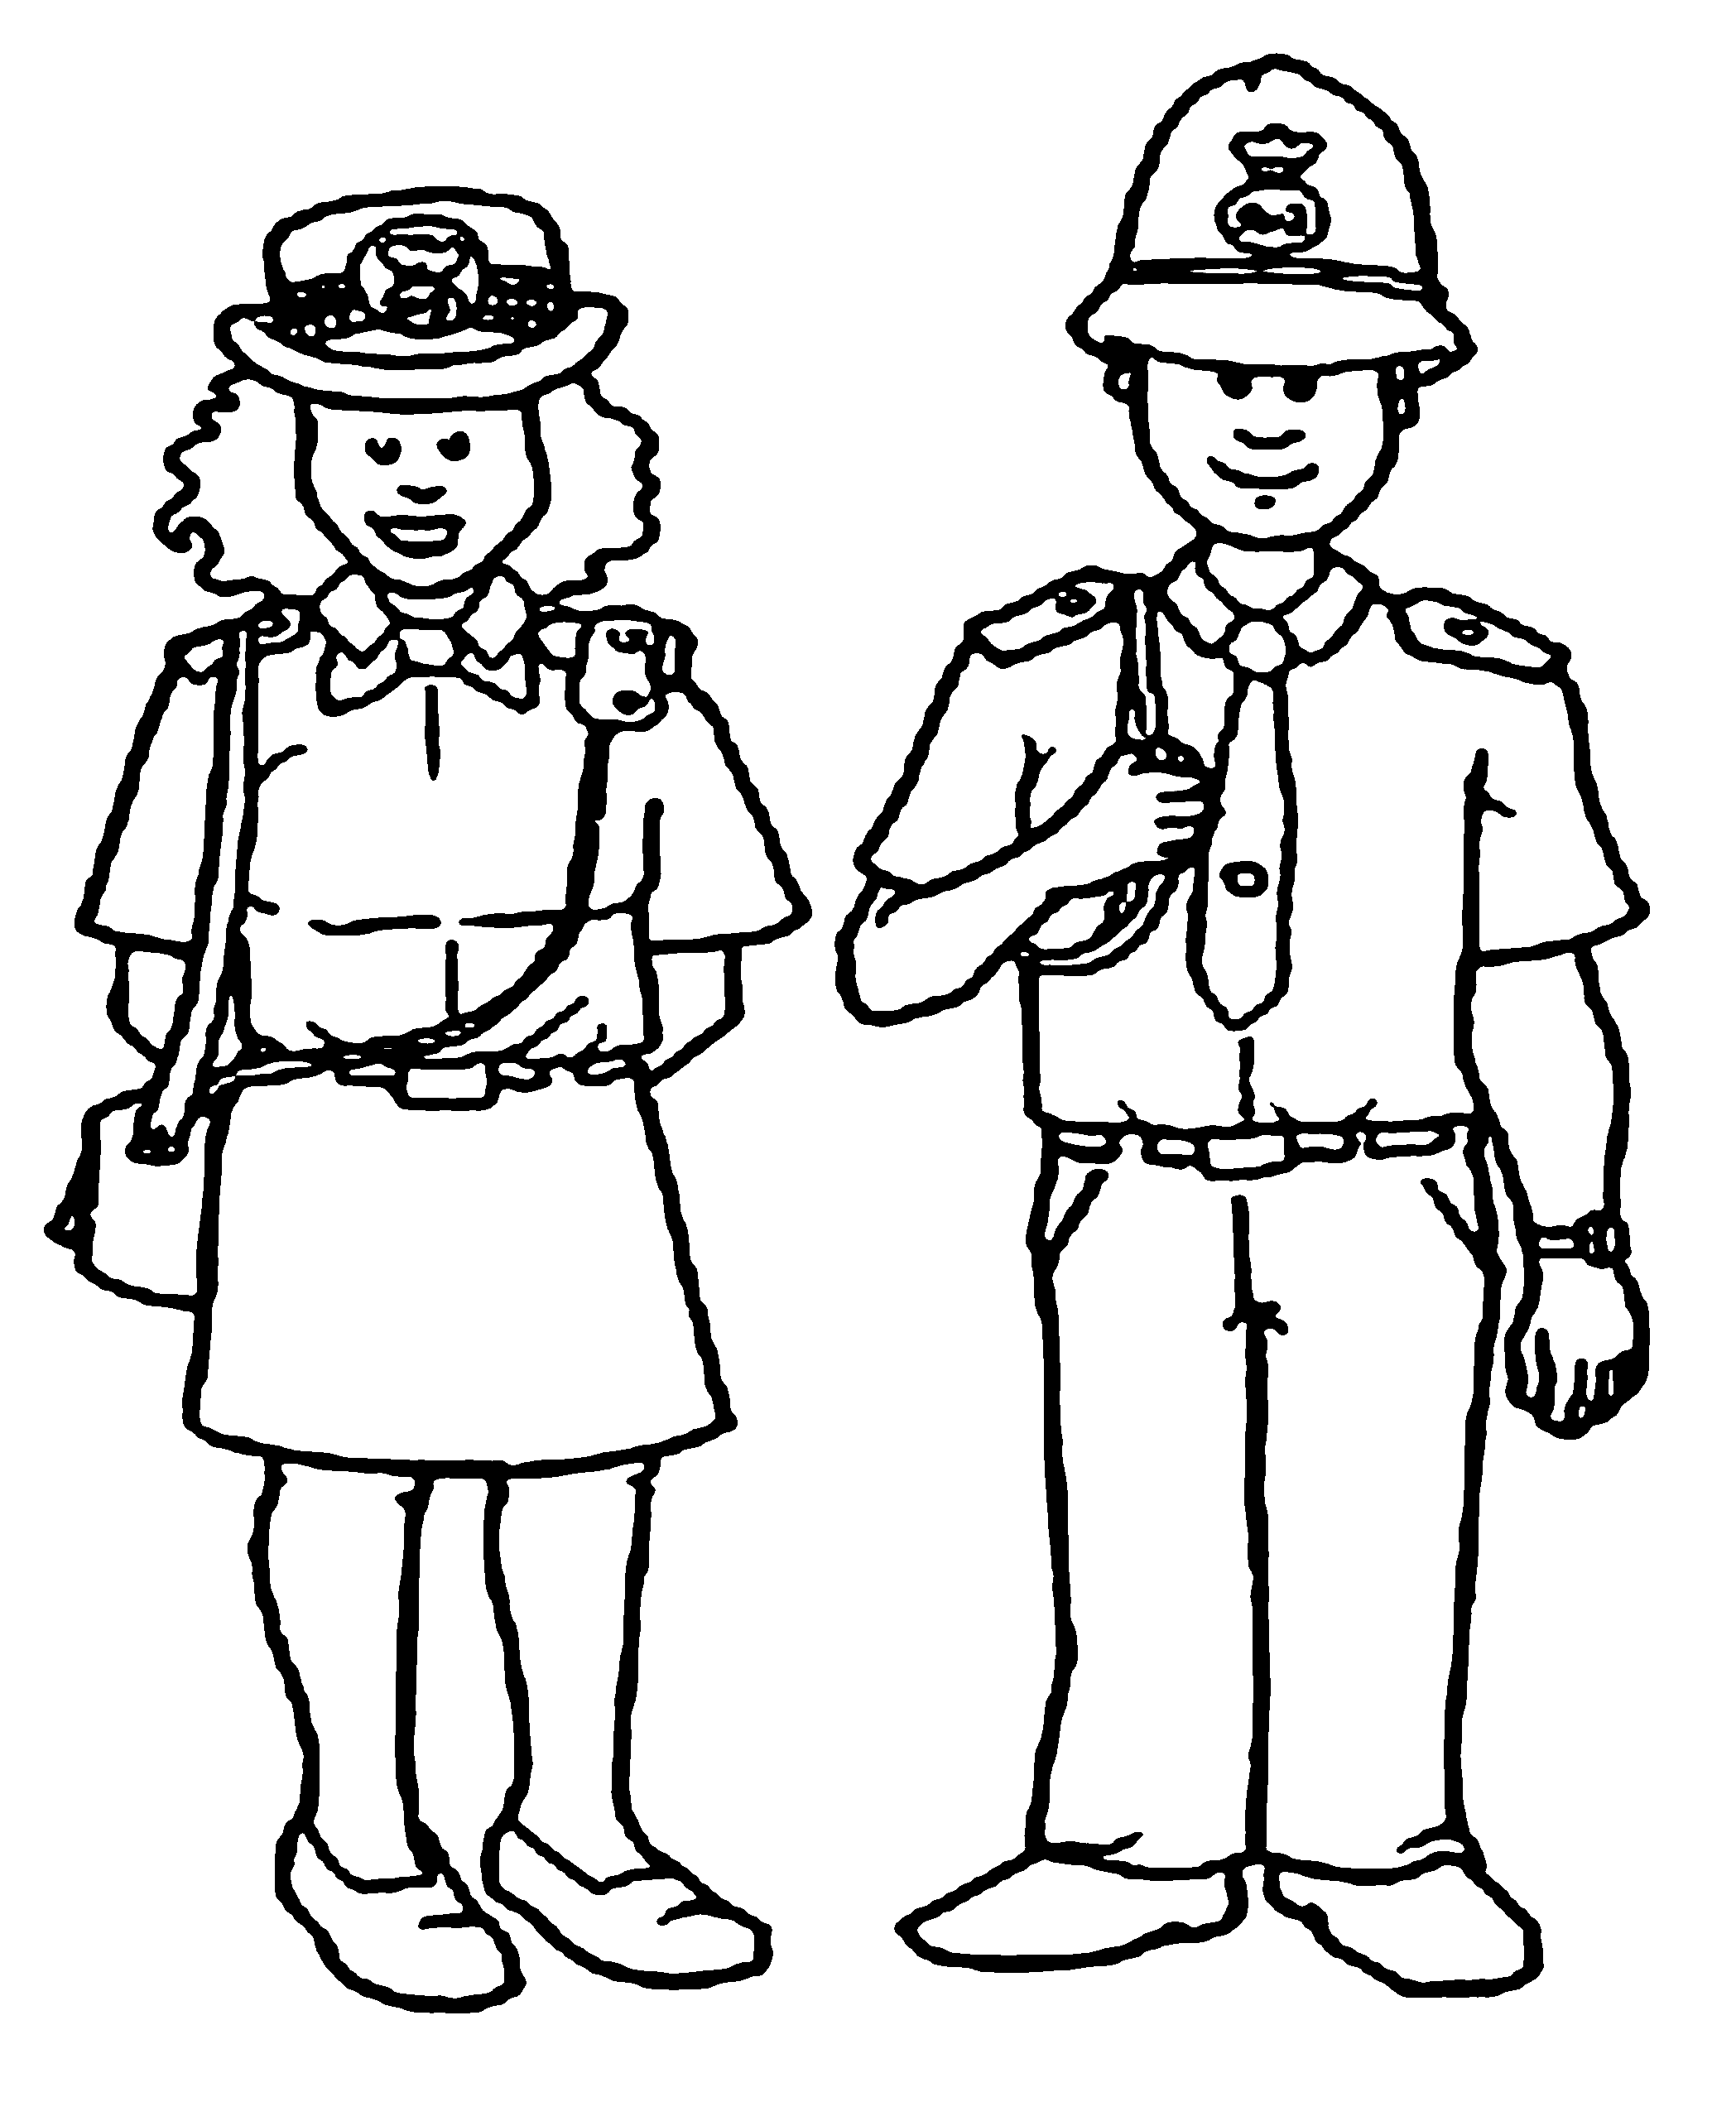 Free Kids Police Officer Coloring Pages - Coloring Home